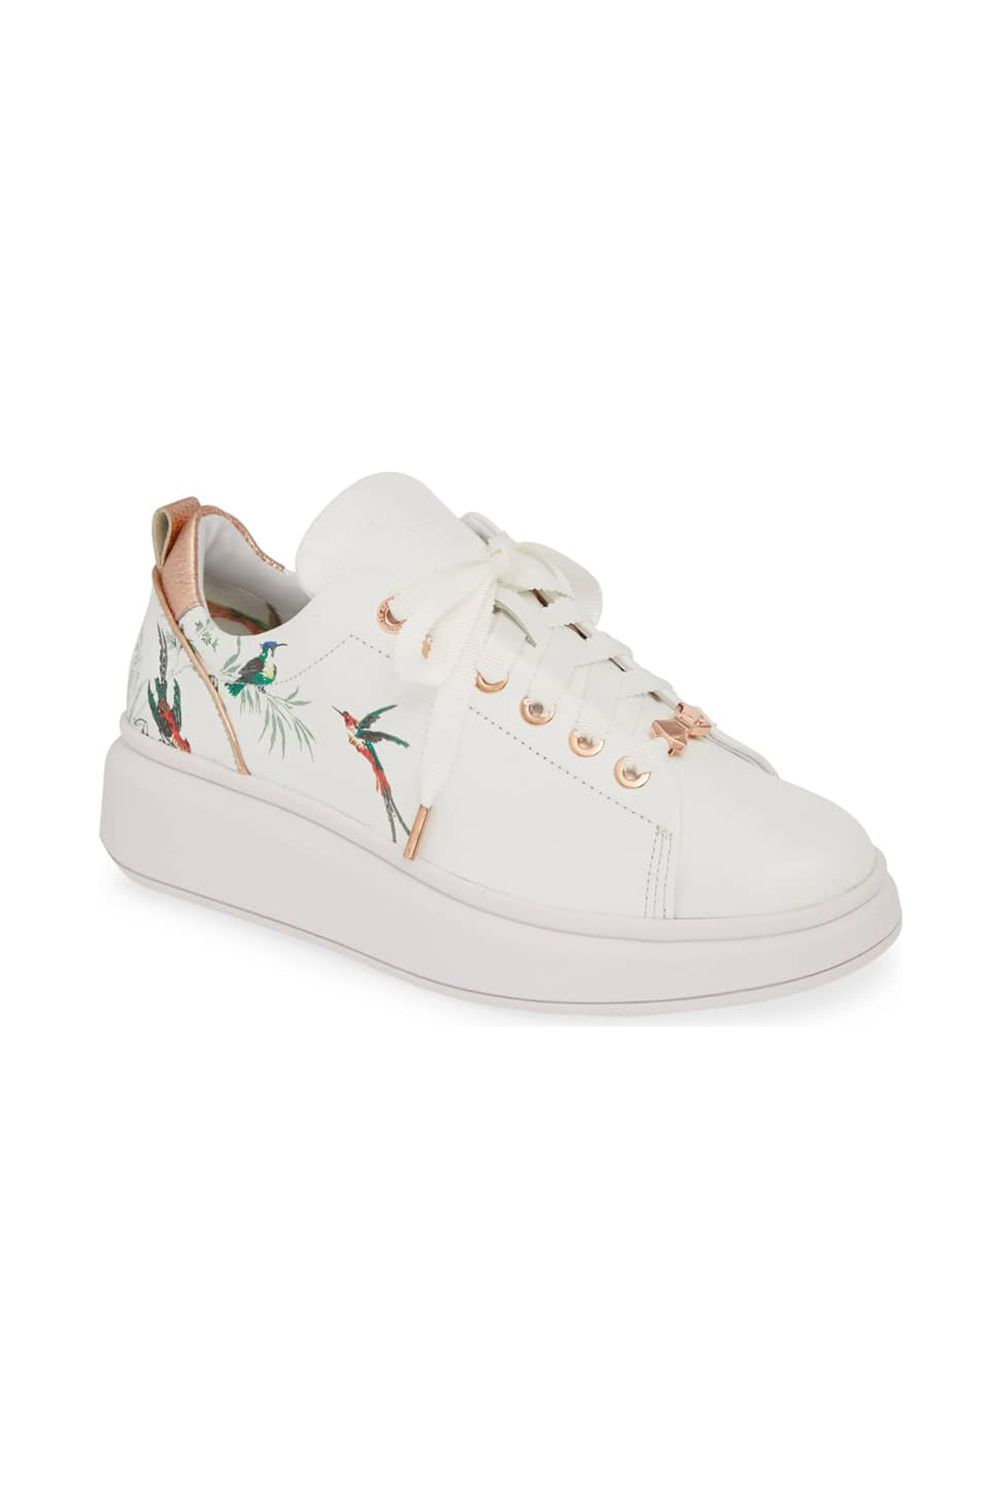 Ailbe 4 Printed Sneaker Ted Baker London nordstrom.com $199.95 SHOP IT Hummingbirds and rose-gold colored laces give this sneaker a feminine vibe, if that is what you're looking for. This sweet-as-can-be footwear pairs nicely with more masculine pieces in your wardrobe like trousers or a blazer suit set.